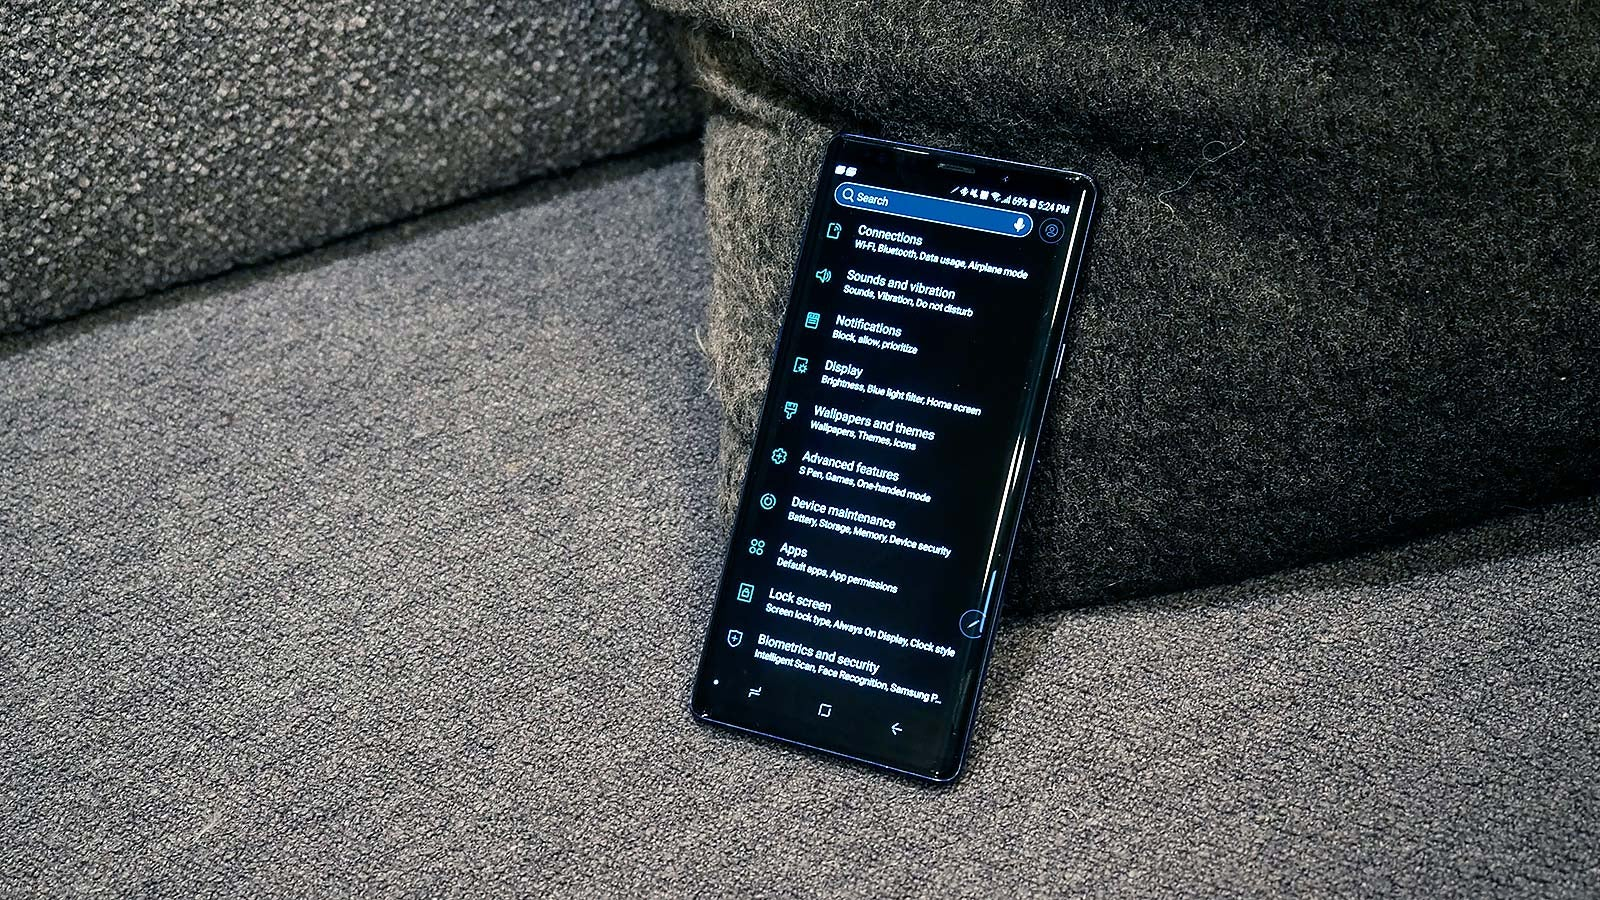 2019 Could Be The Year Your Phone Finally Gets A Real Dark Mode